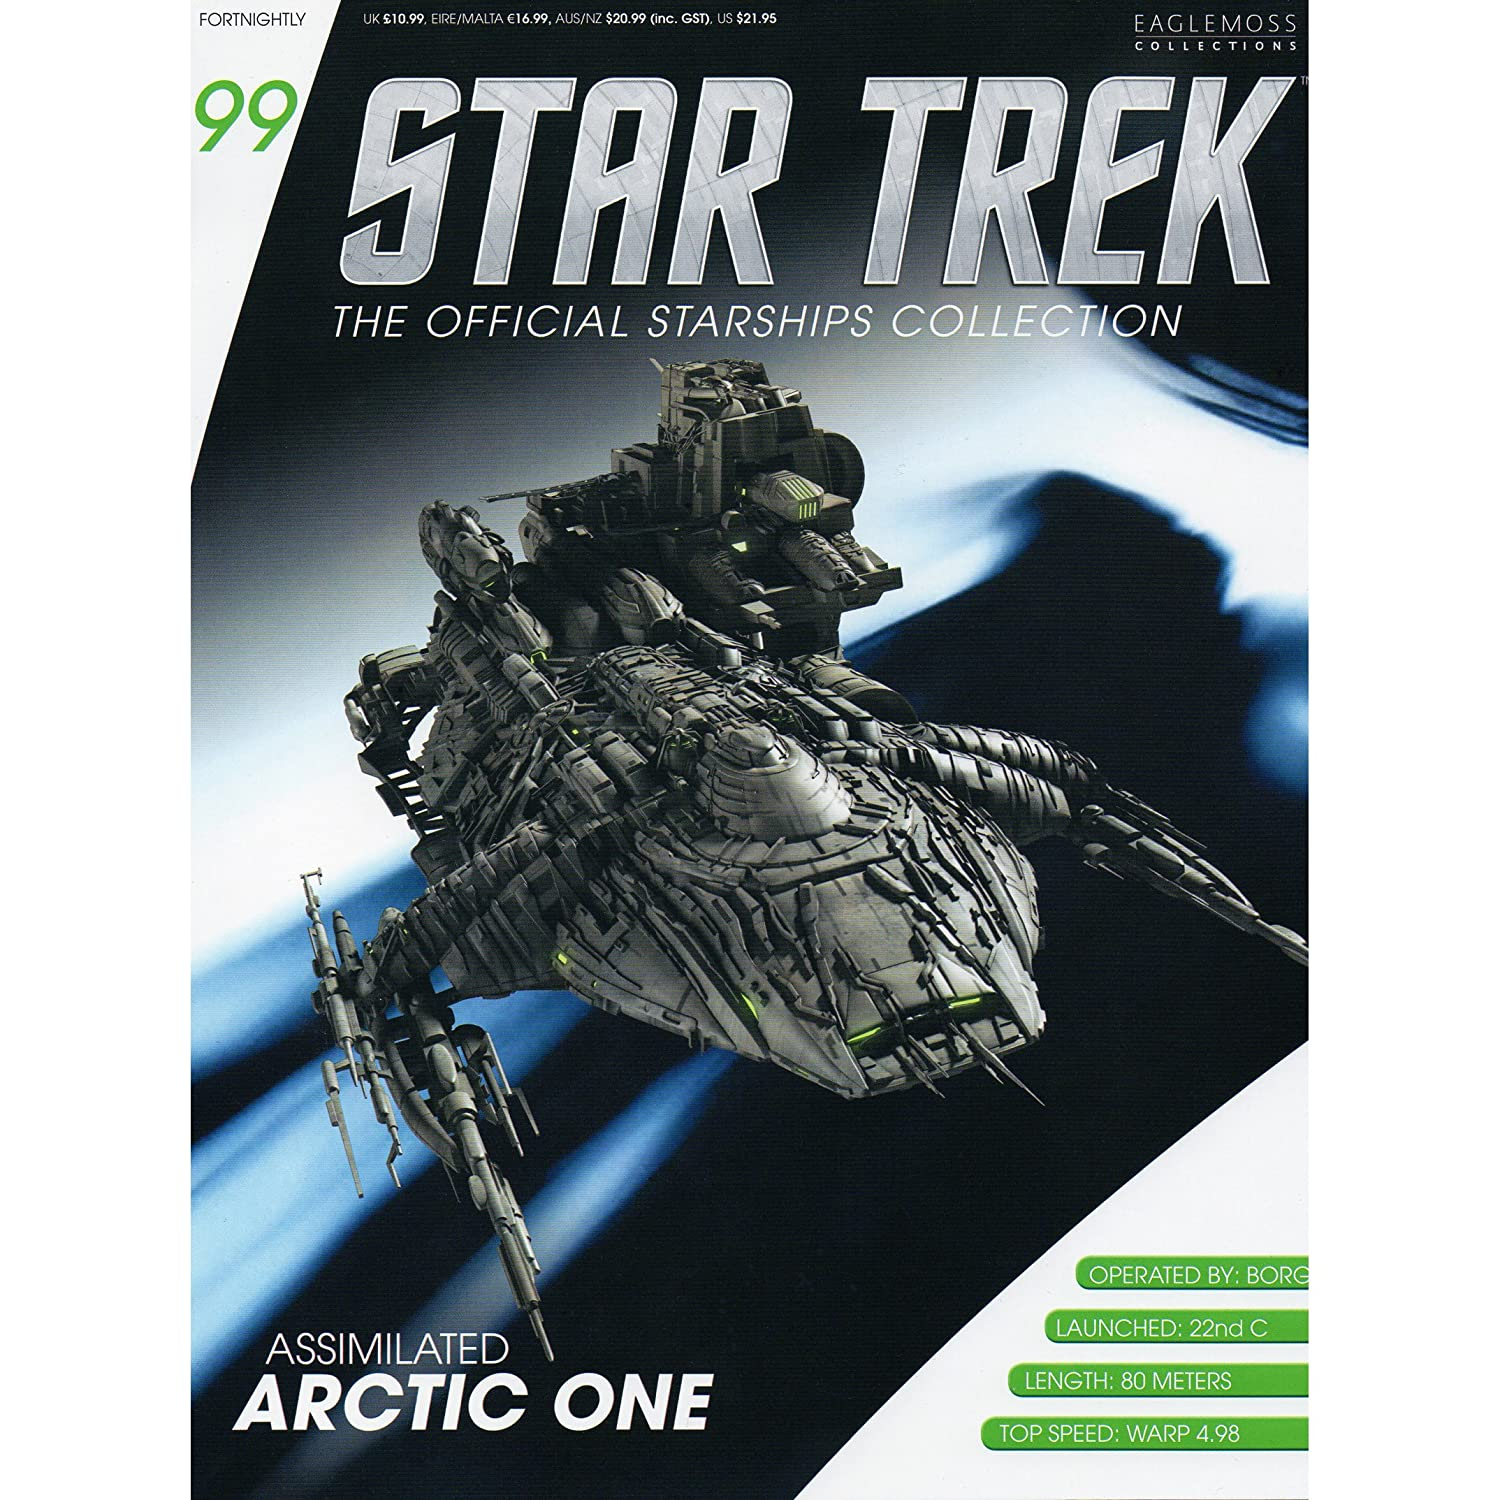 Star Trek Assimilated Arctic One Model with Magazine #99 by Eaglemoss